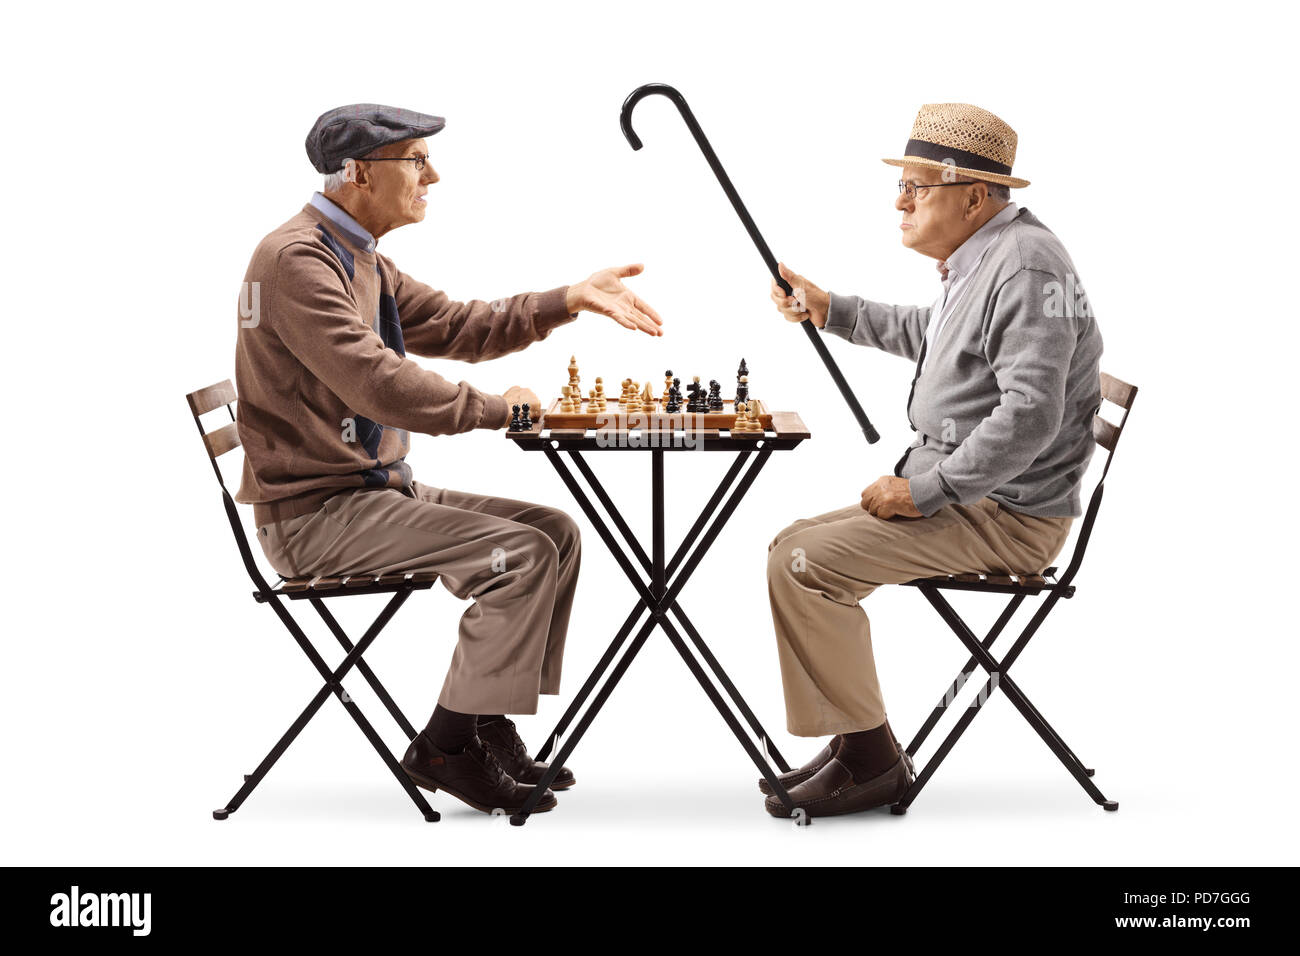 Seniors playing a game of chess and arguing isolated on white background - Stock Image